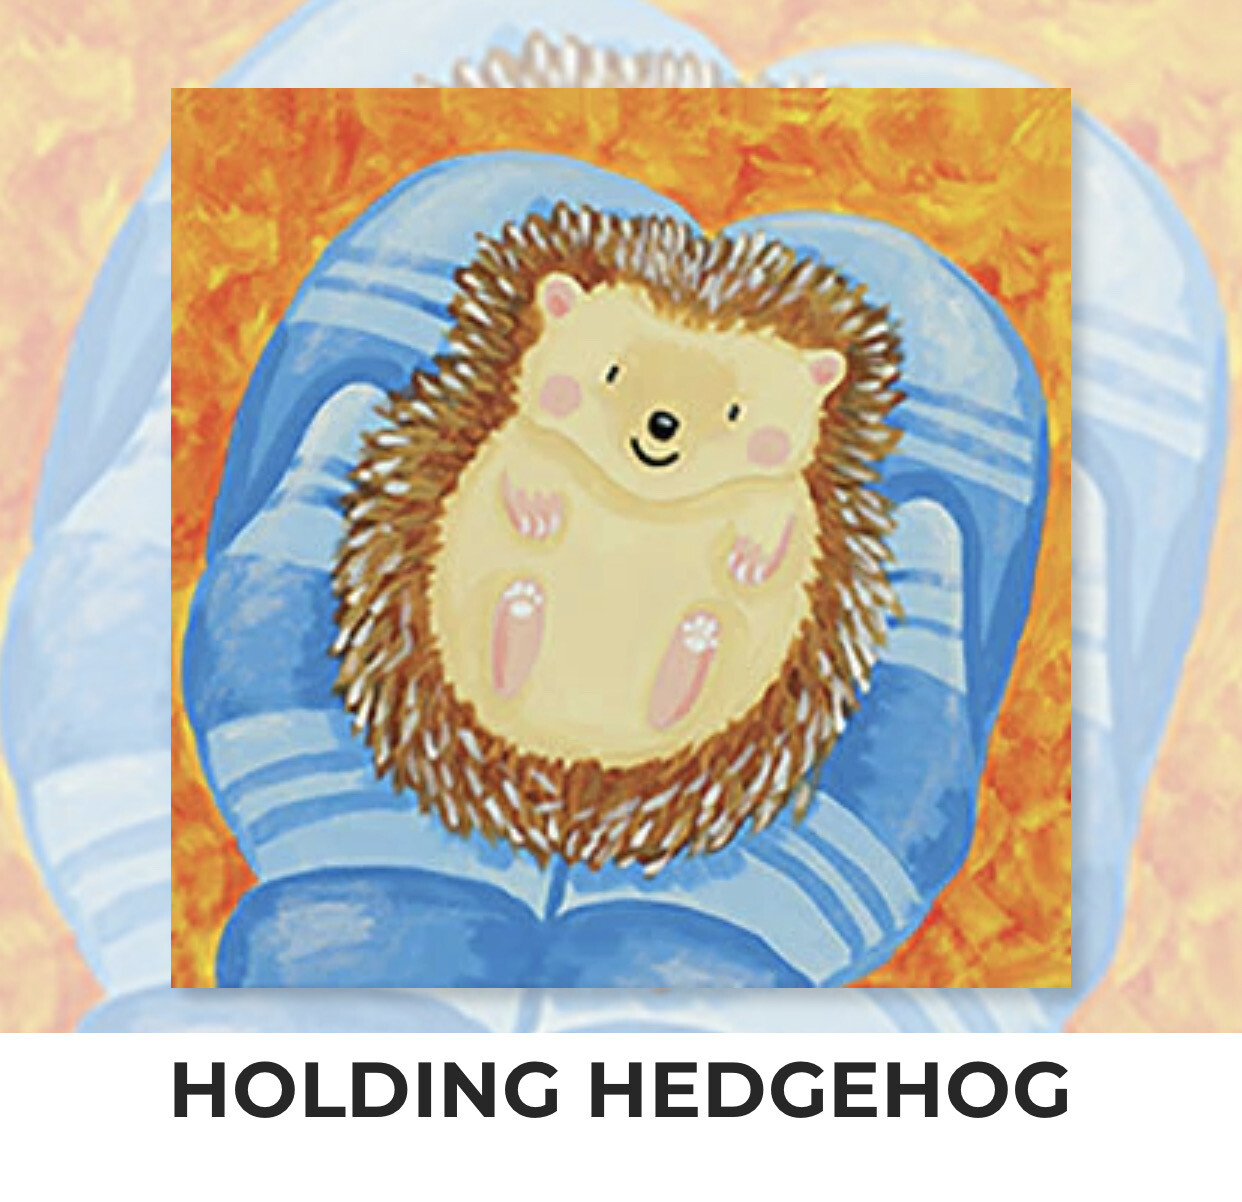 Holding Hedgehog KIDS Acrylic Paint On Canvas DIY Art Kit - 3 Week Special Order